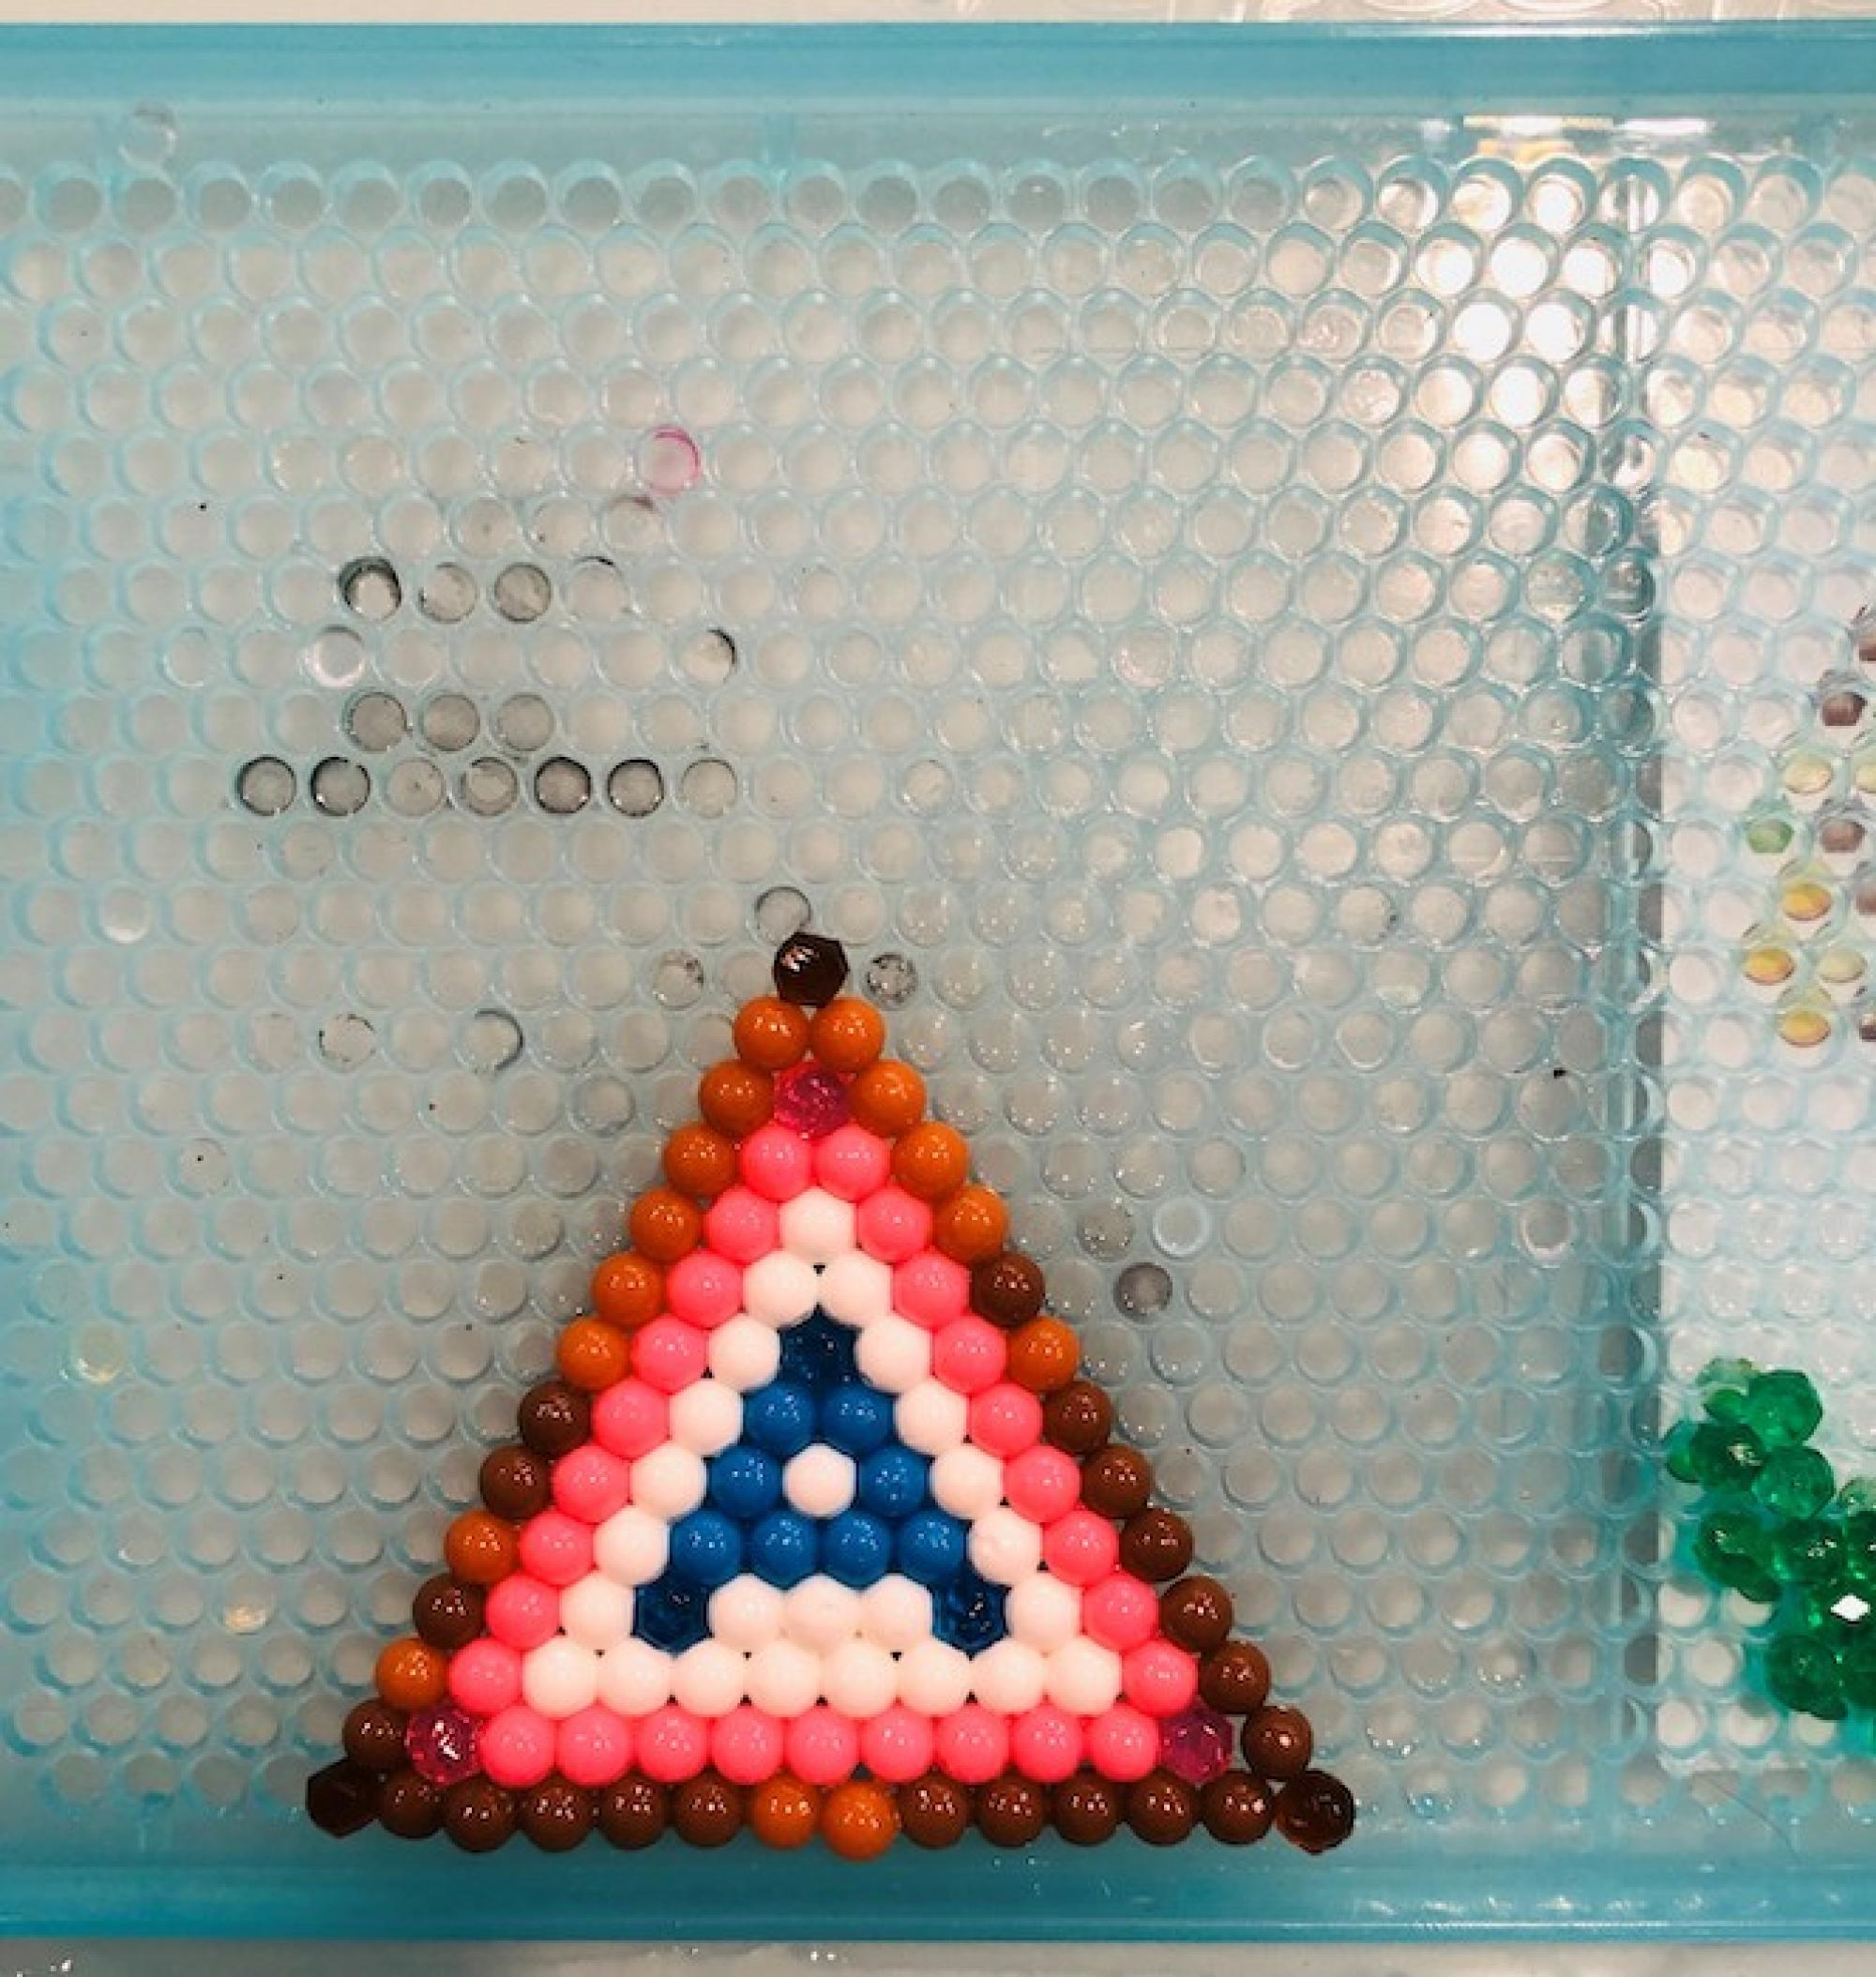 """While their UA-employed parents now both work from home, my two sons are keeping themselves entertained and celebrating their Wildcat spirit: The 6-year-old is making A Mountains out of Aquabeads and the 4-year-old is handing out """"tickets to Arizona baseb"""